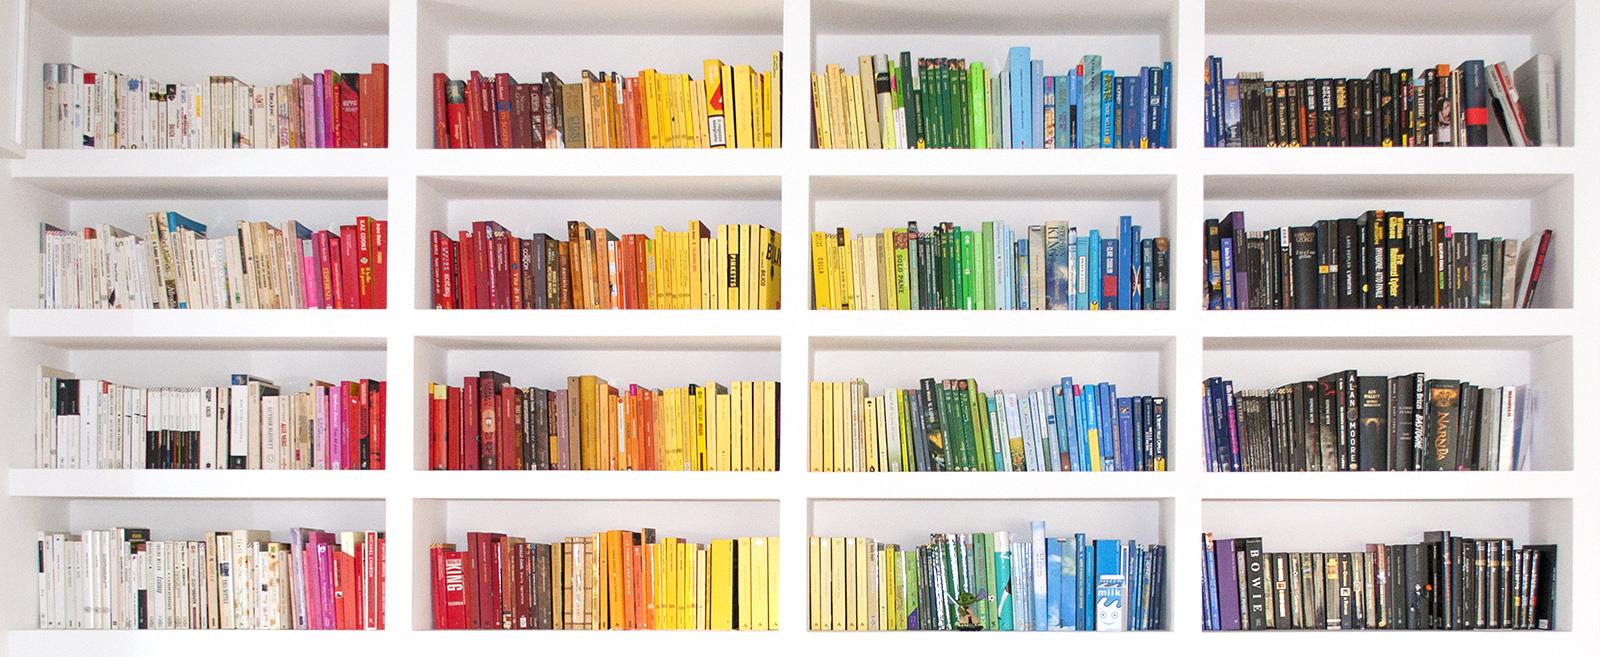 A picture of books spine on book shelves, group together by colour.